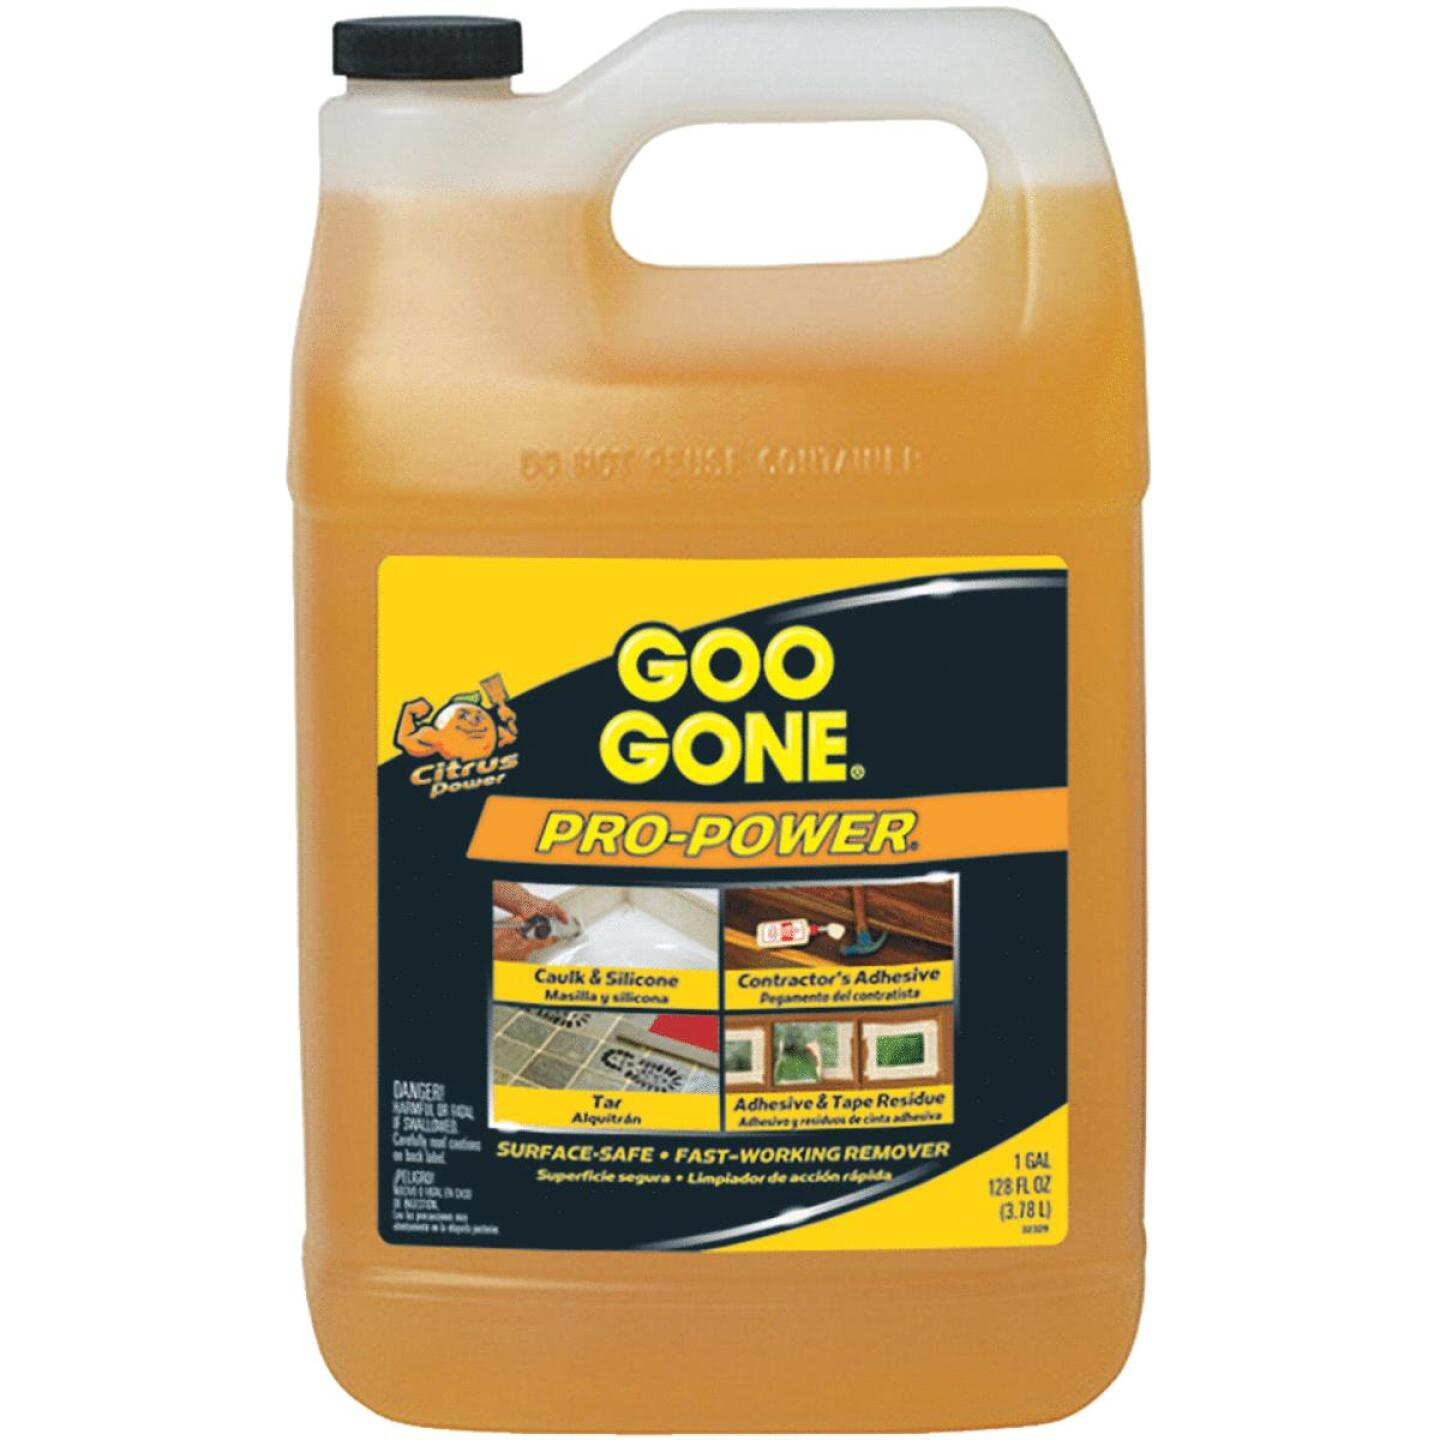 Goo Gone 1 Gal. Pro-Power Adhesive Remover Image 129